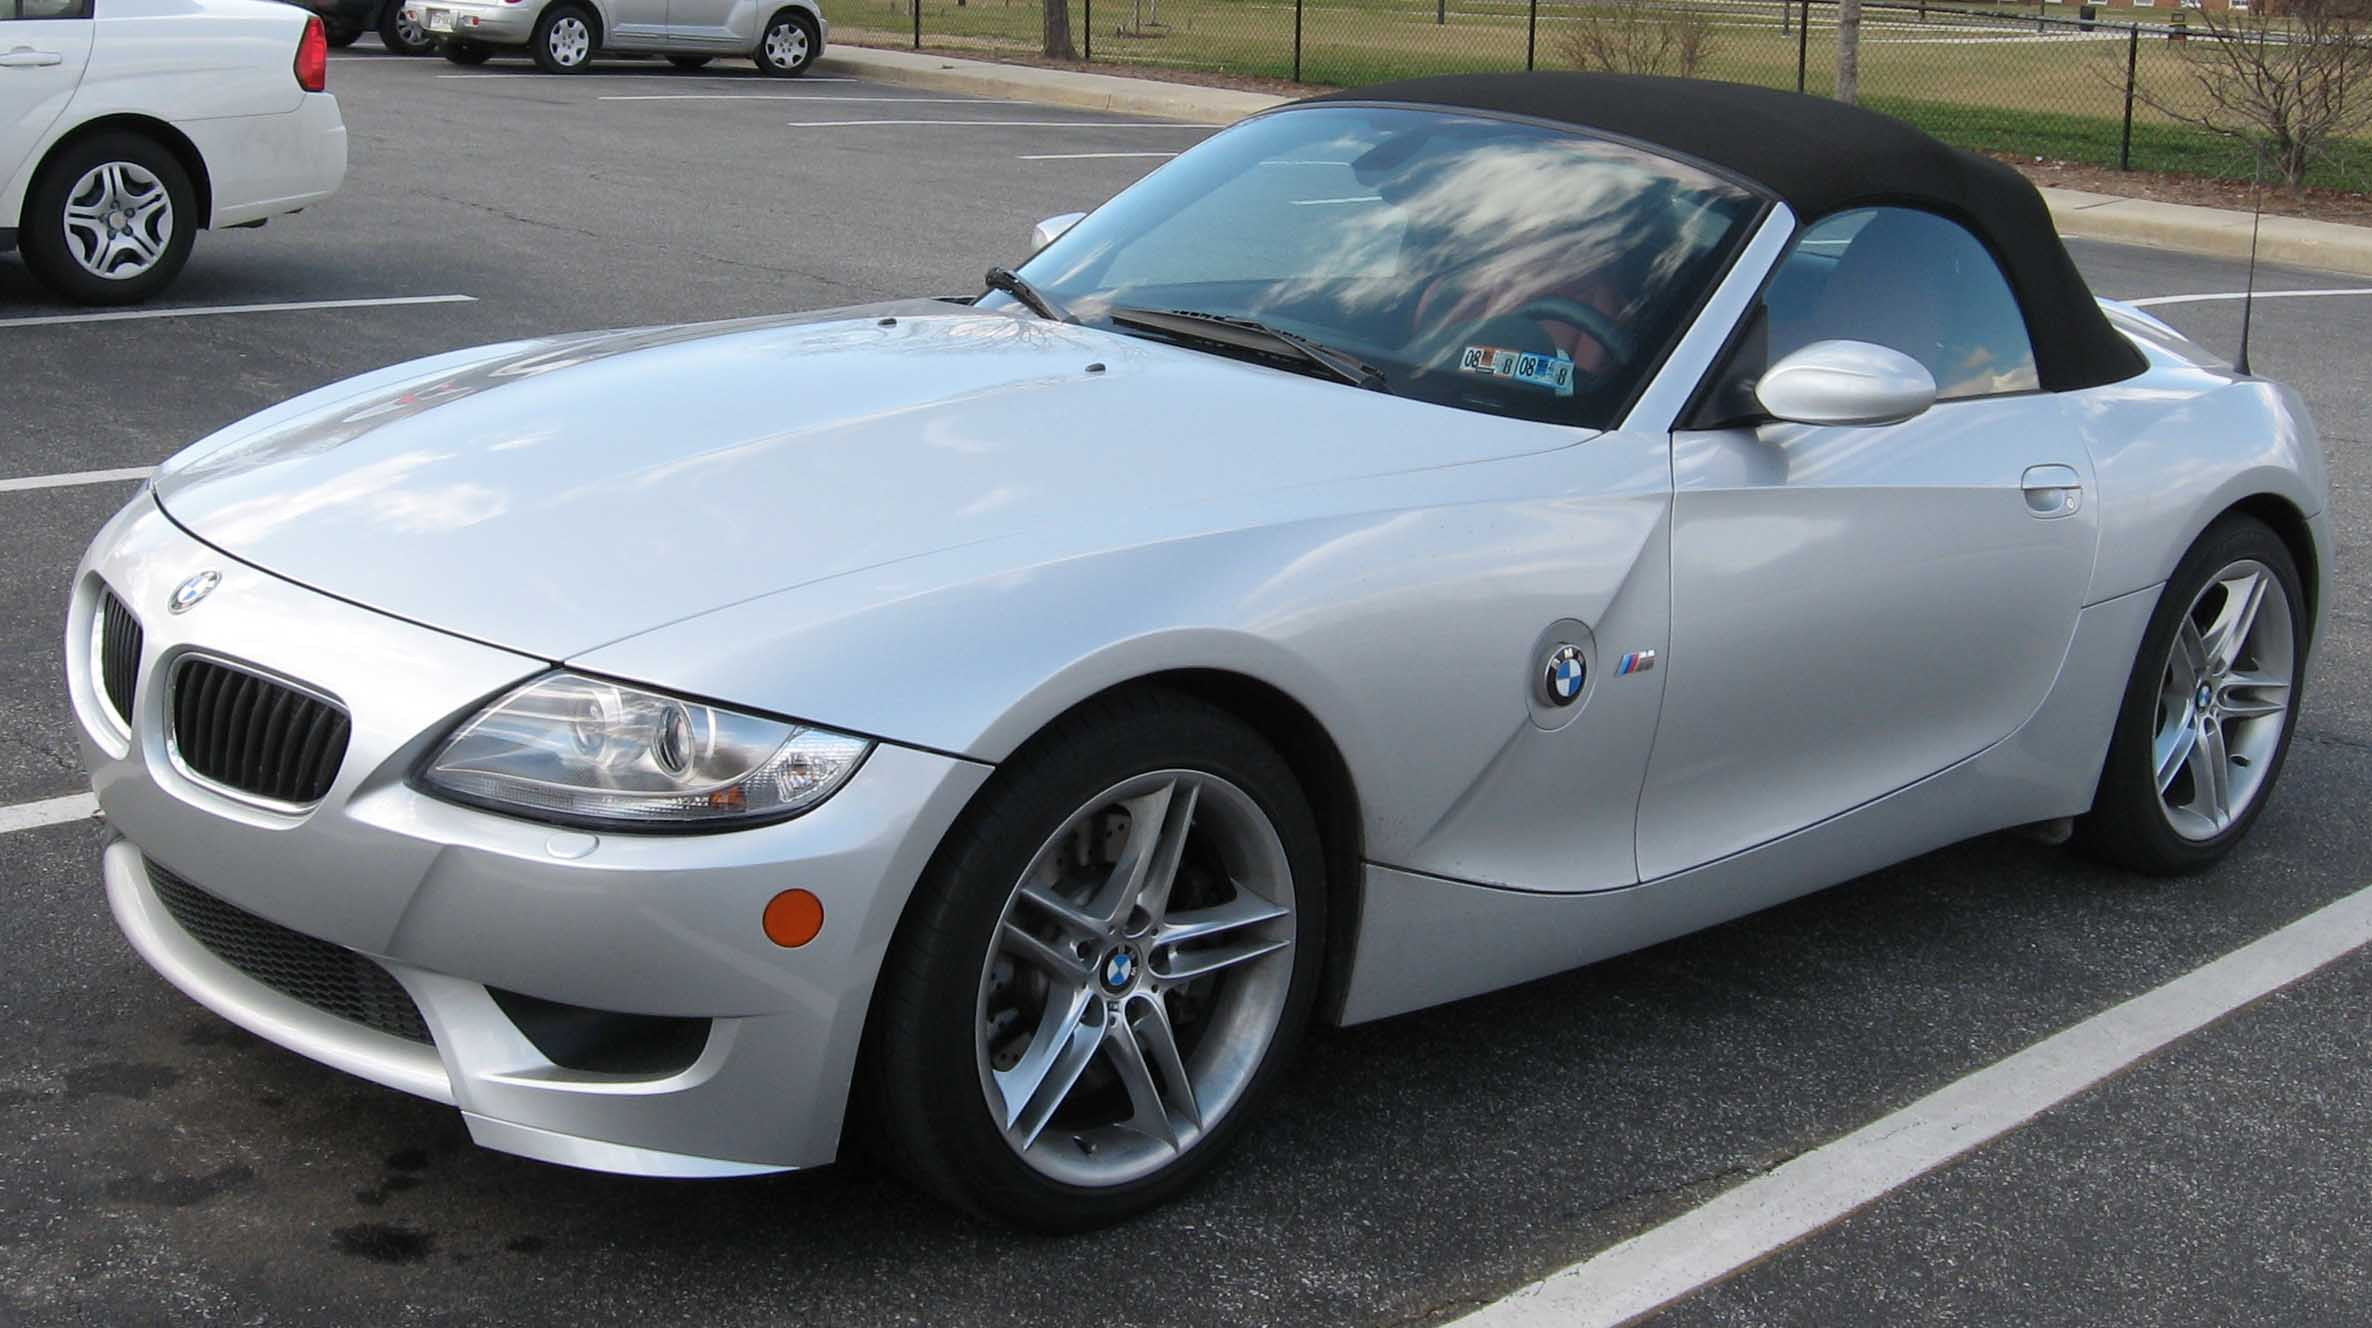 file:bmw z4 m 2 - wikimedia commons